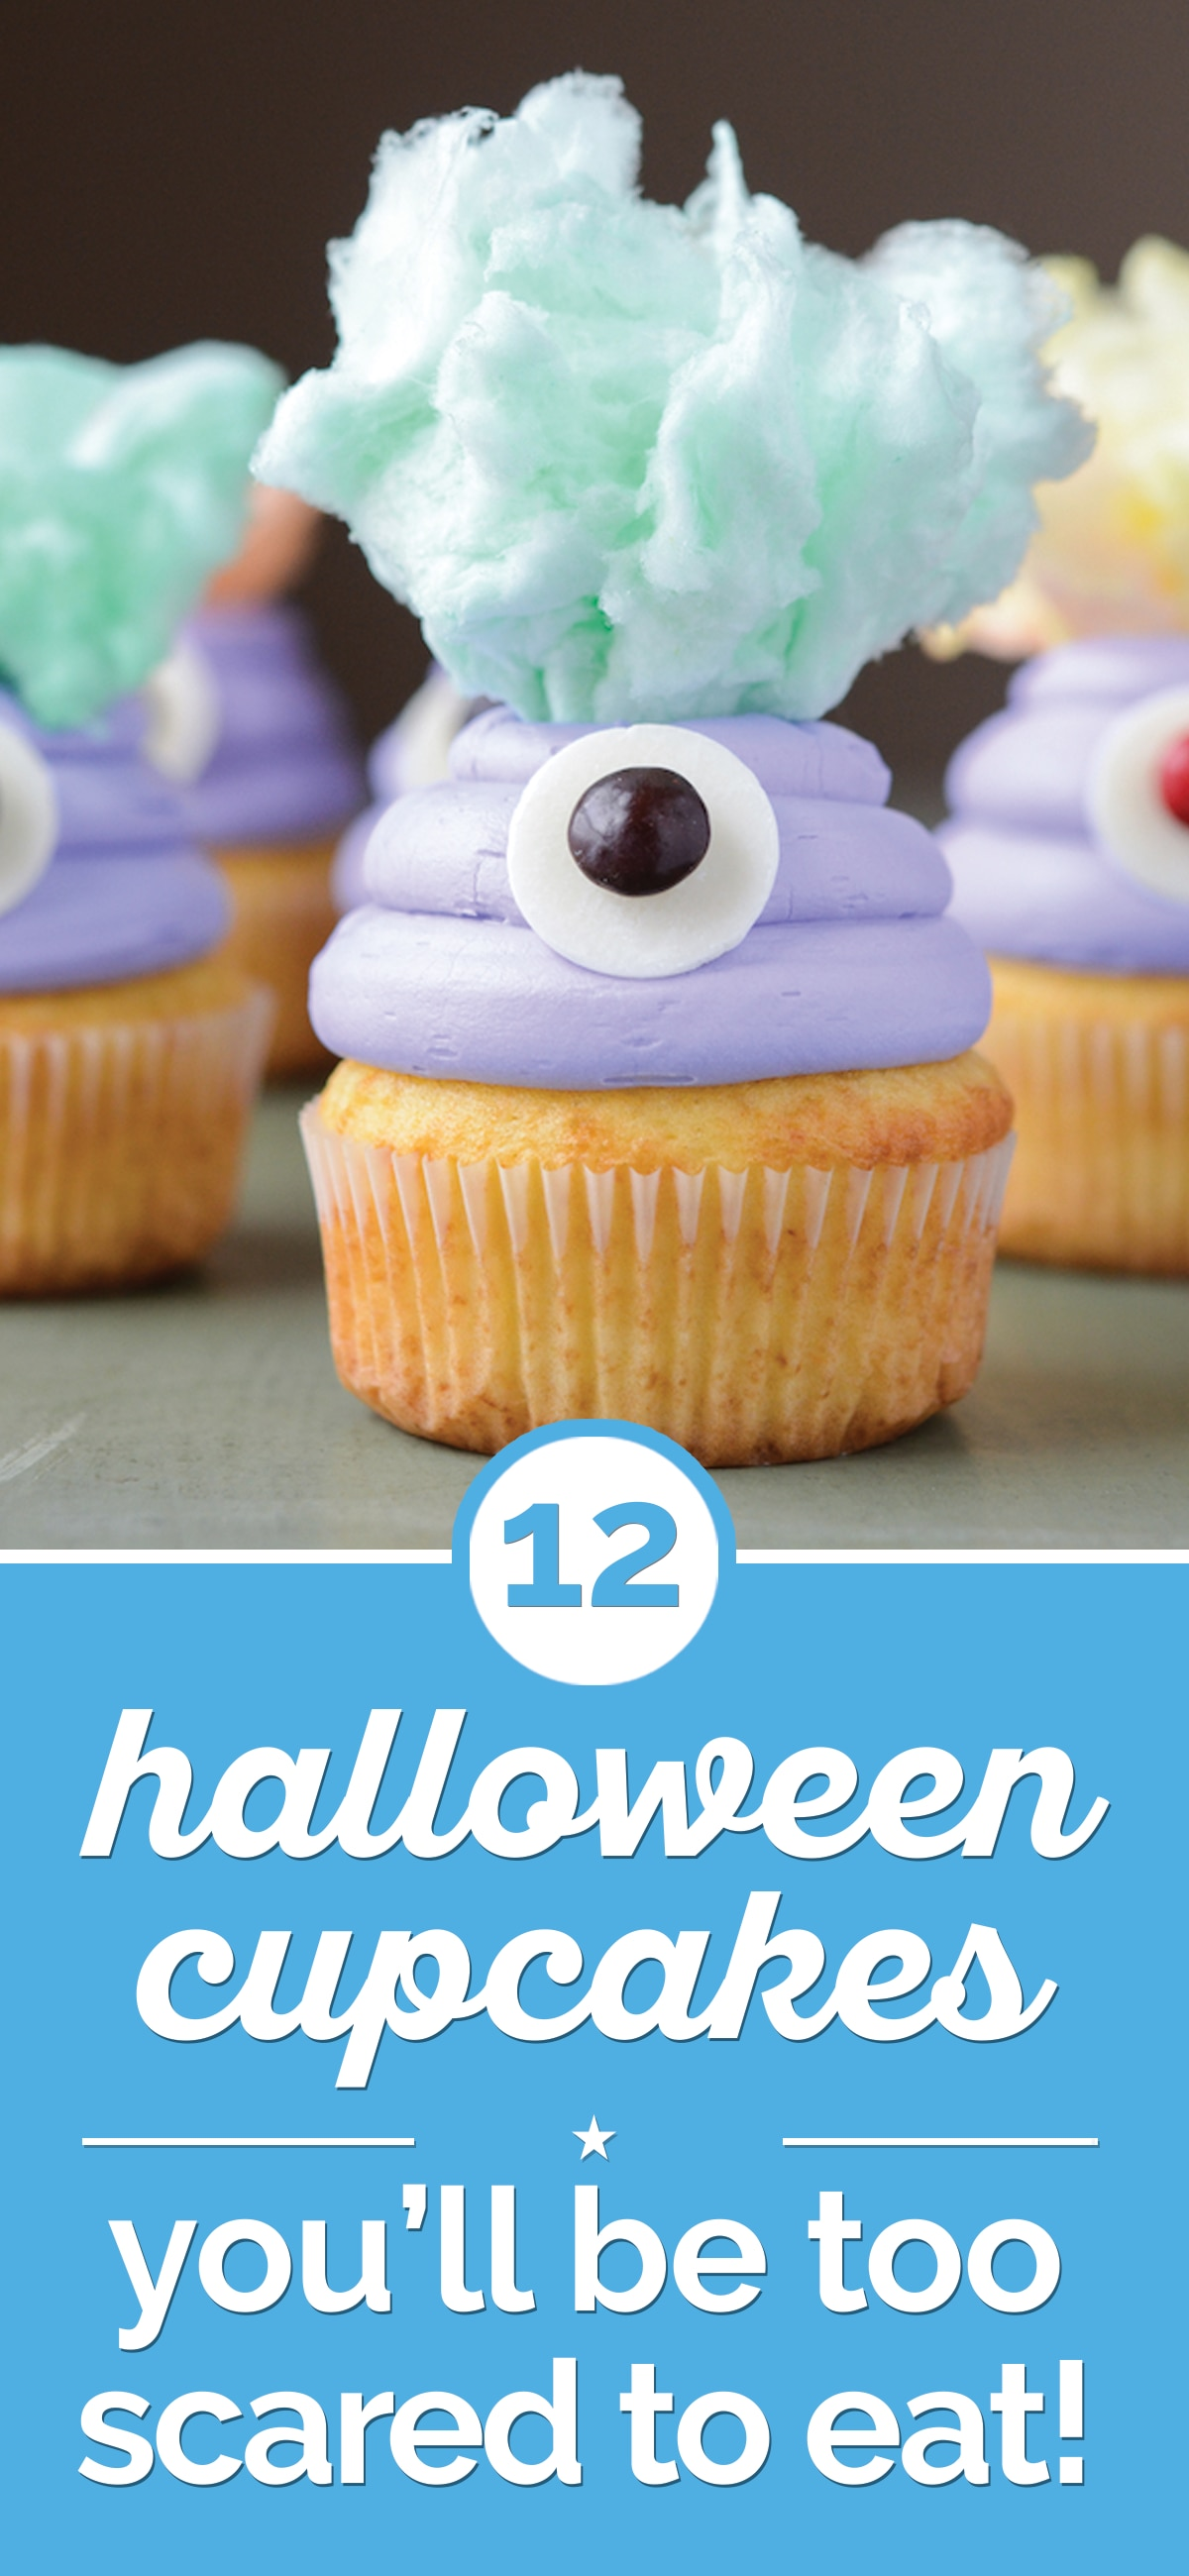 12 Halloween Cupcakes You'll Be Too Scared to Eat! | thegoodstuff